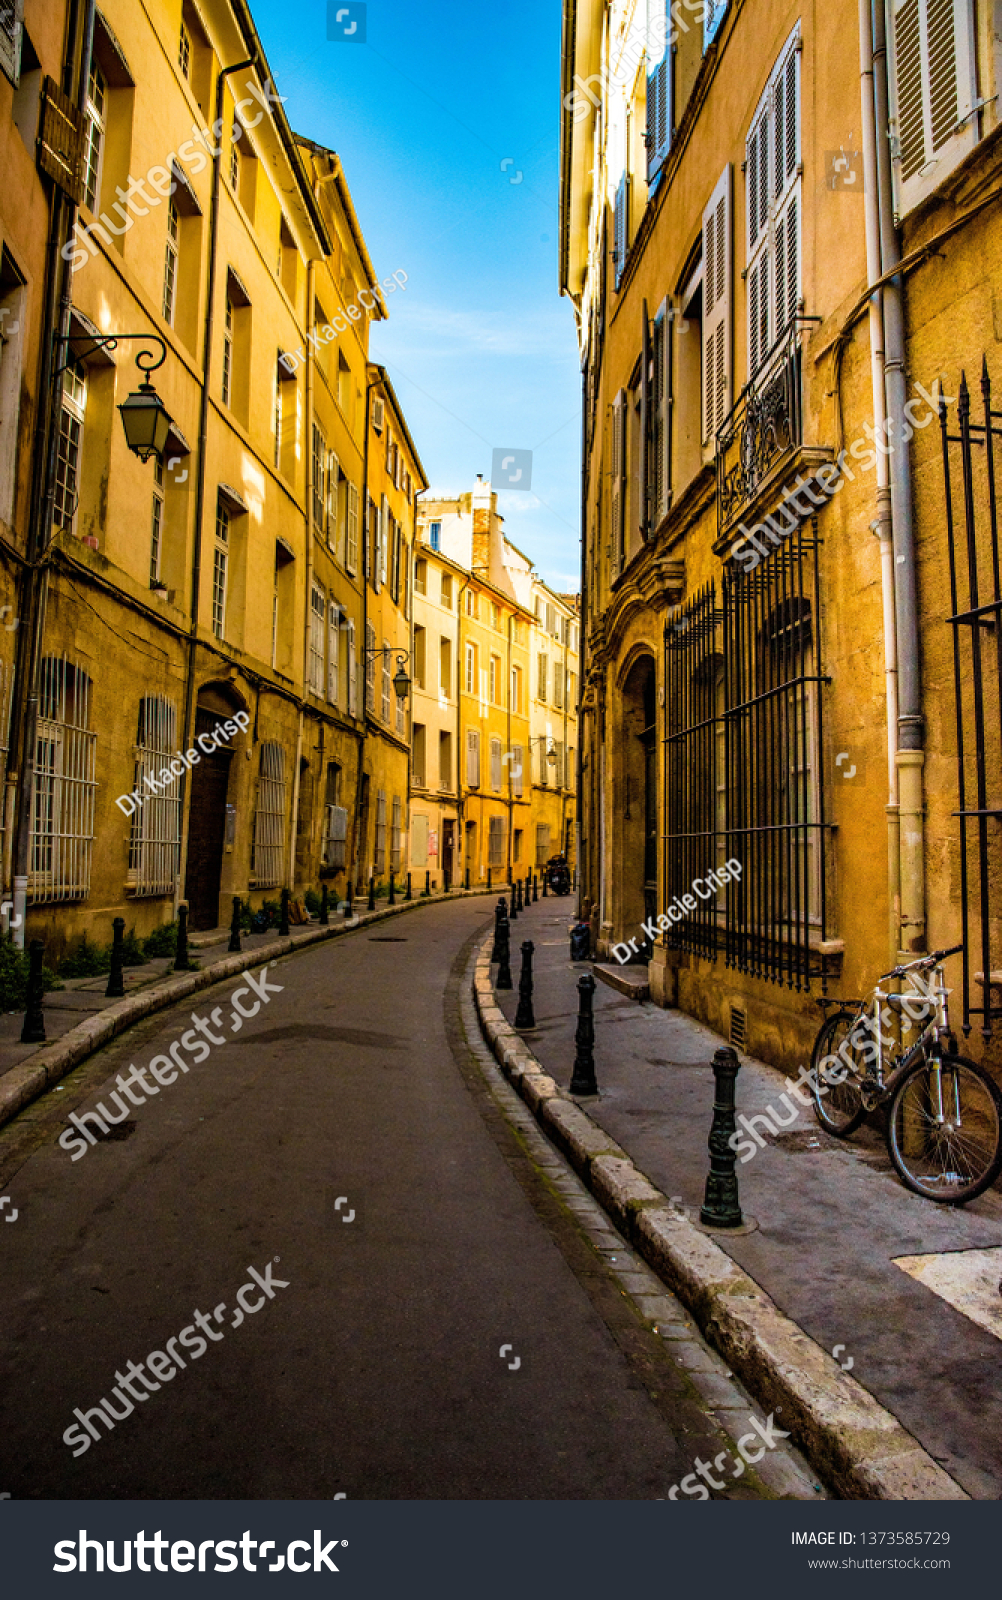 Stone Aix En Provence bicycle rests against honey colored stone stock photo (edit